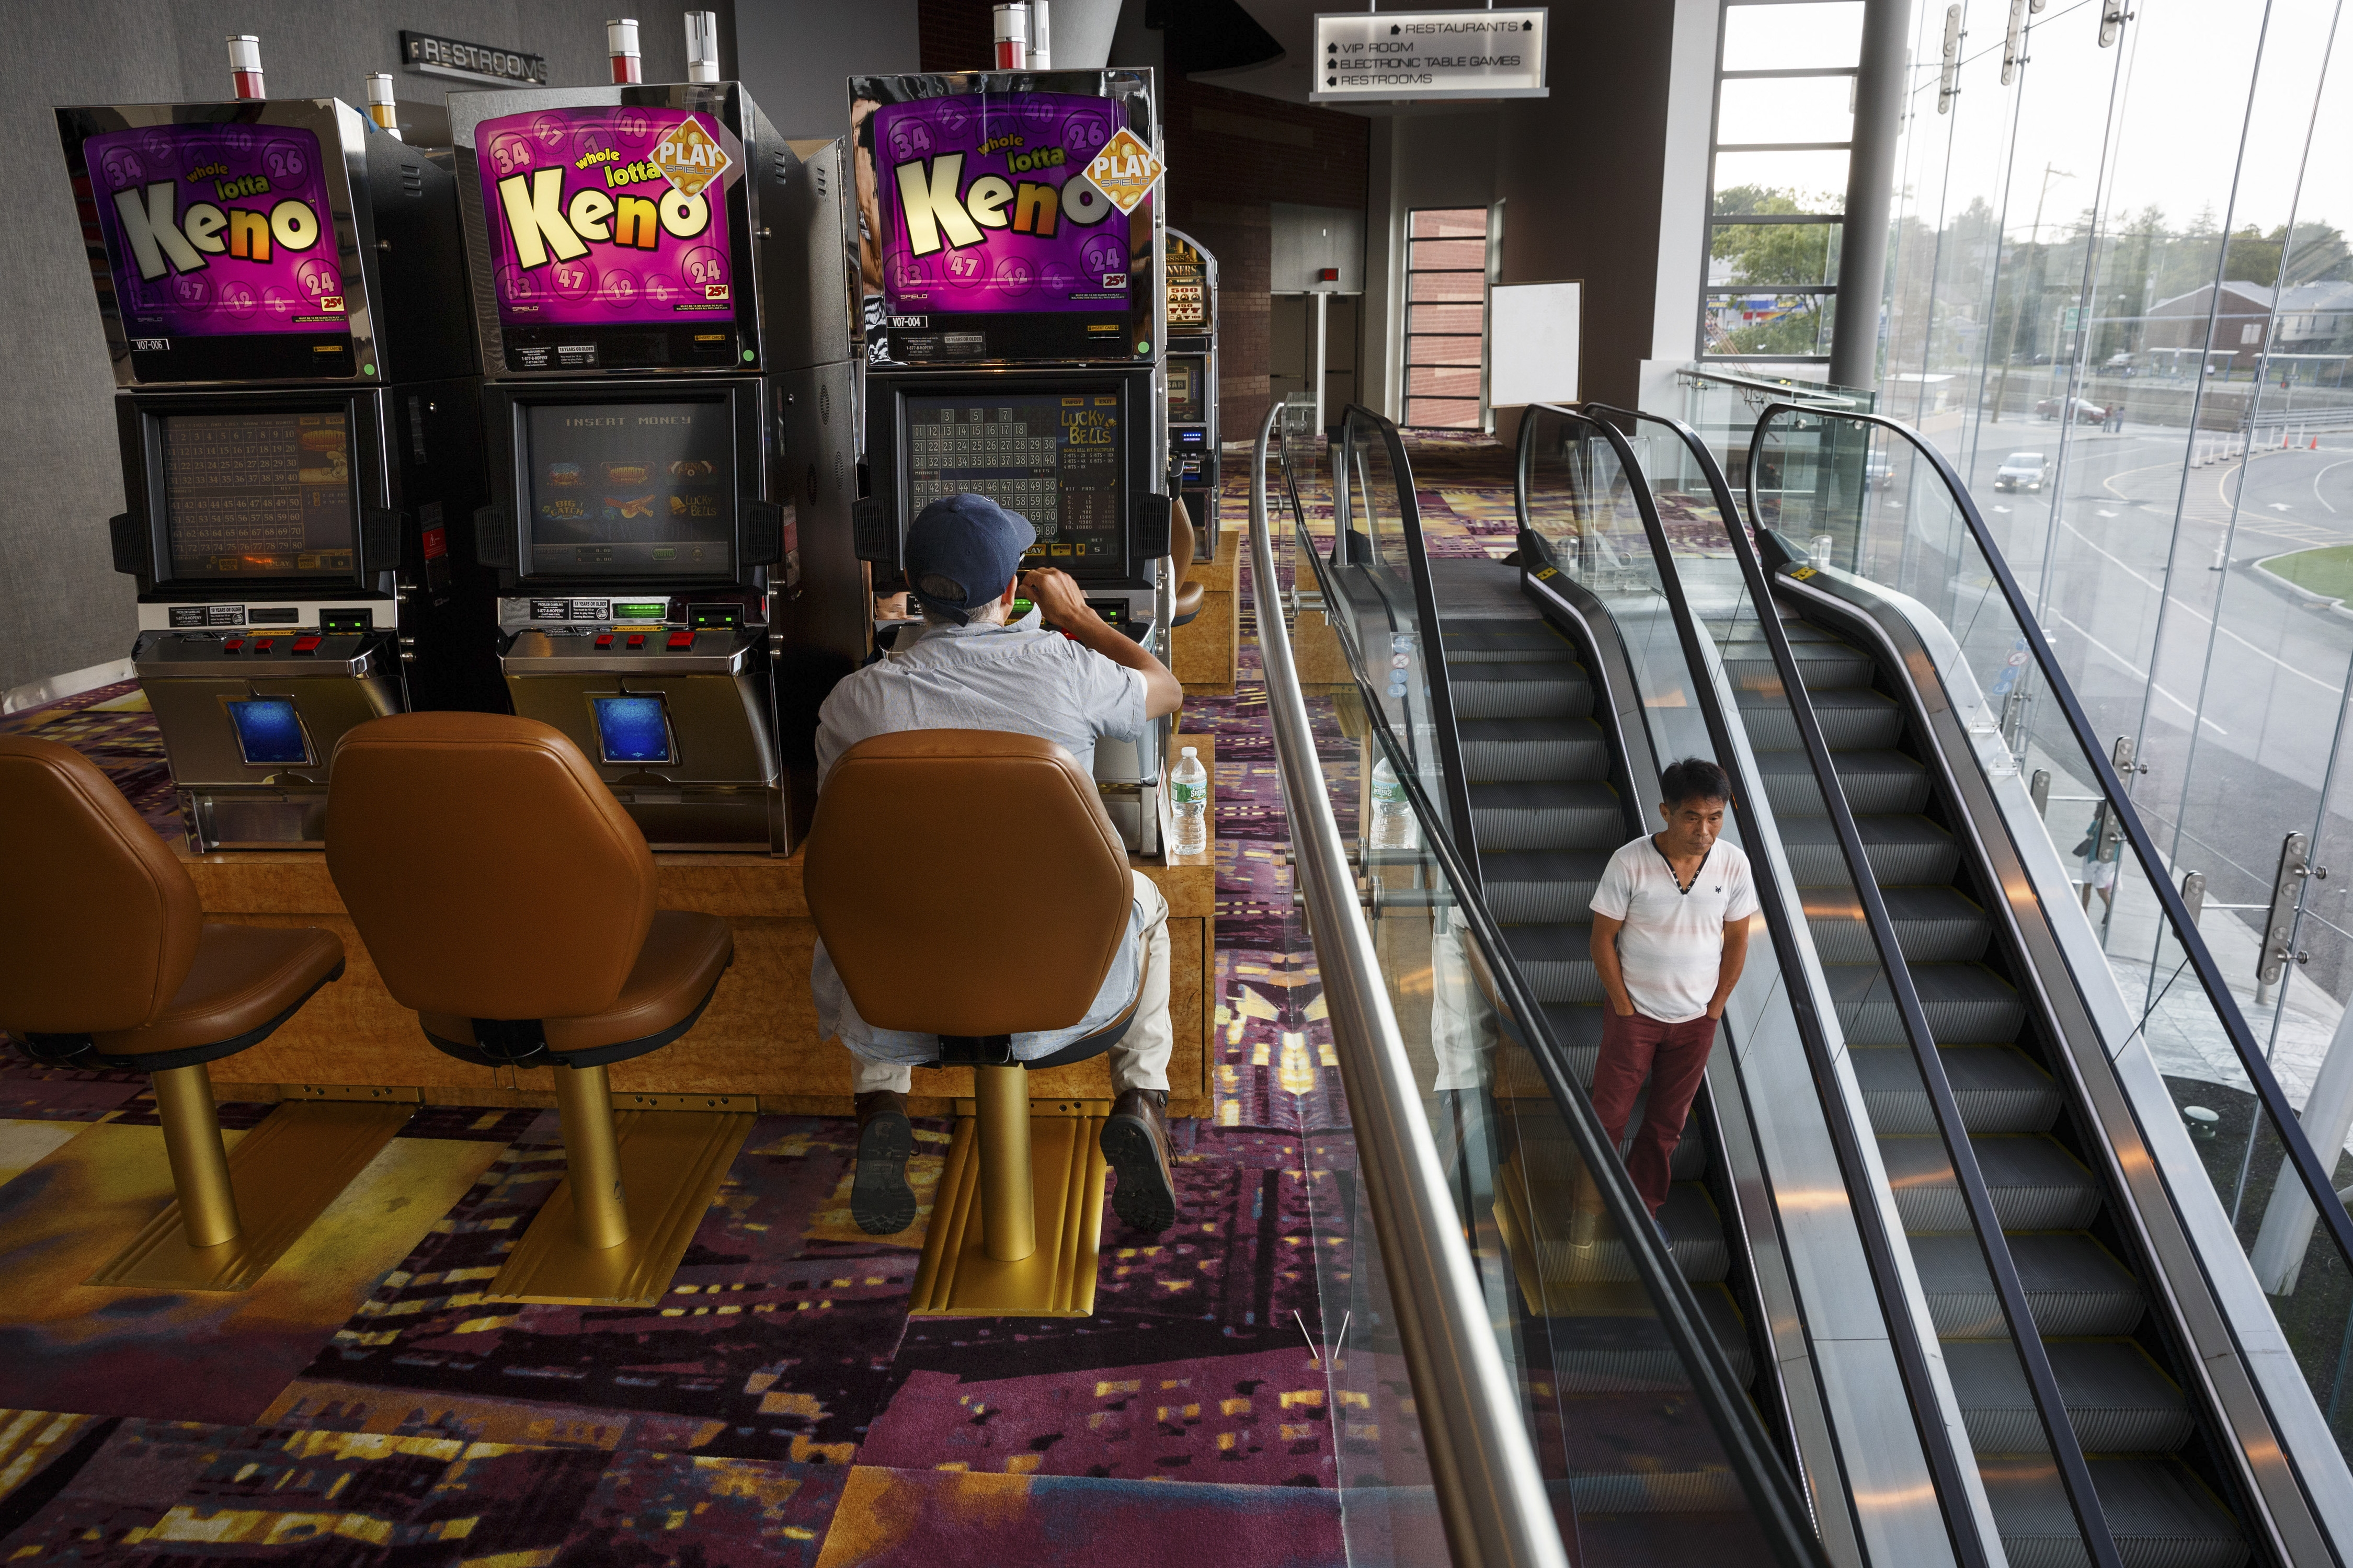 Empire City Casino at Yonkers Raceway is indicative of New York State commitment to the industry, but analysts, economists and casino opera- tors are warning of the effects of fierce competition, if not saturation.